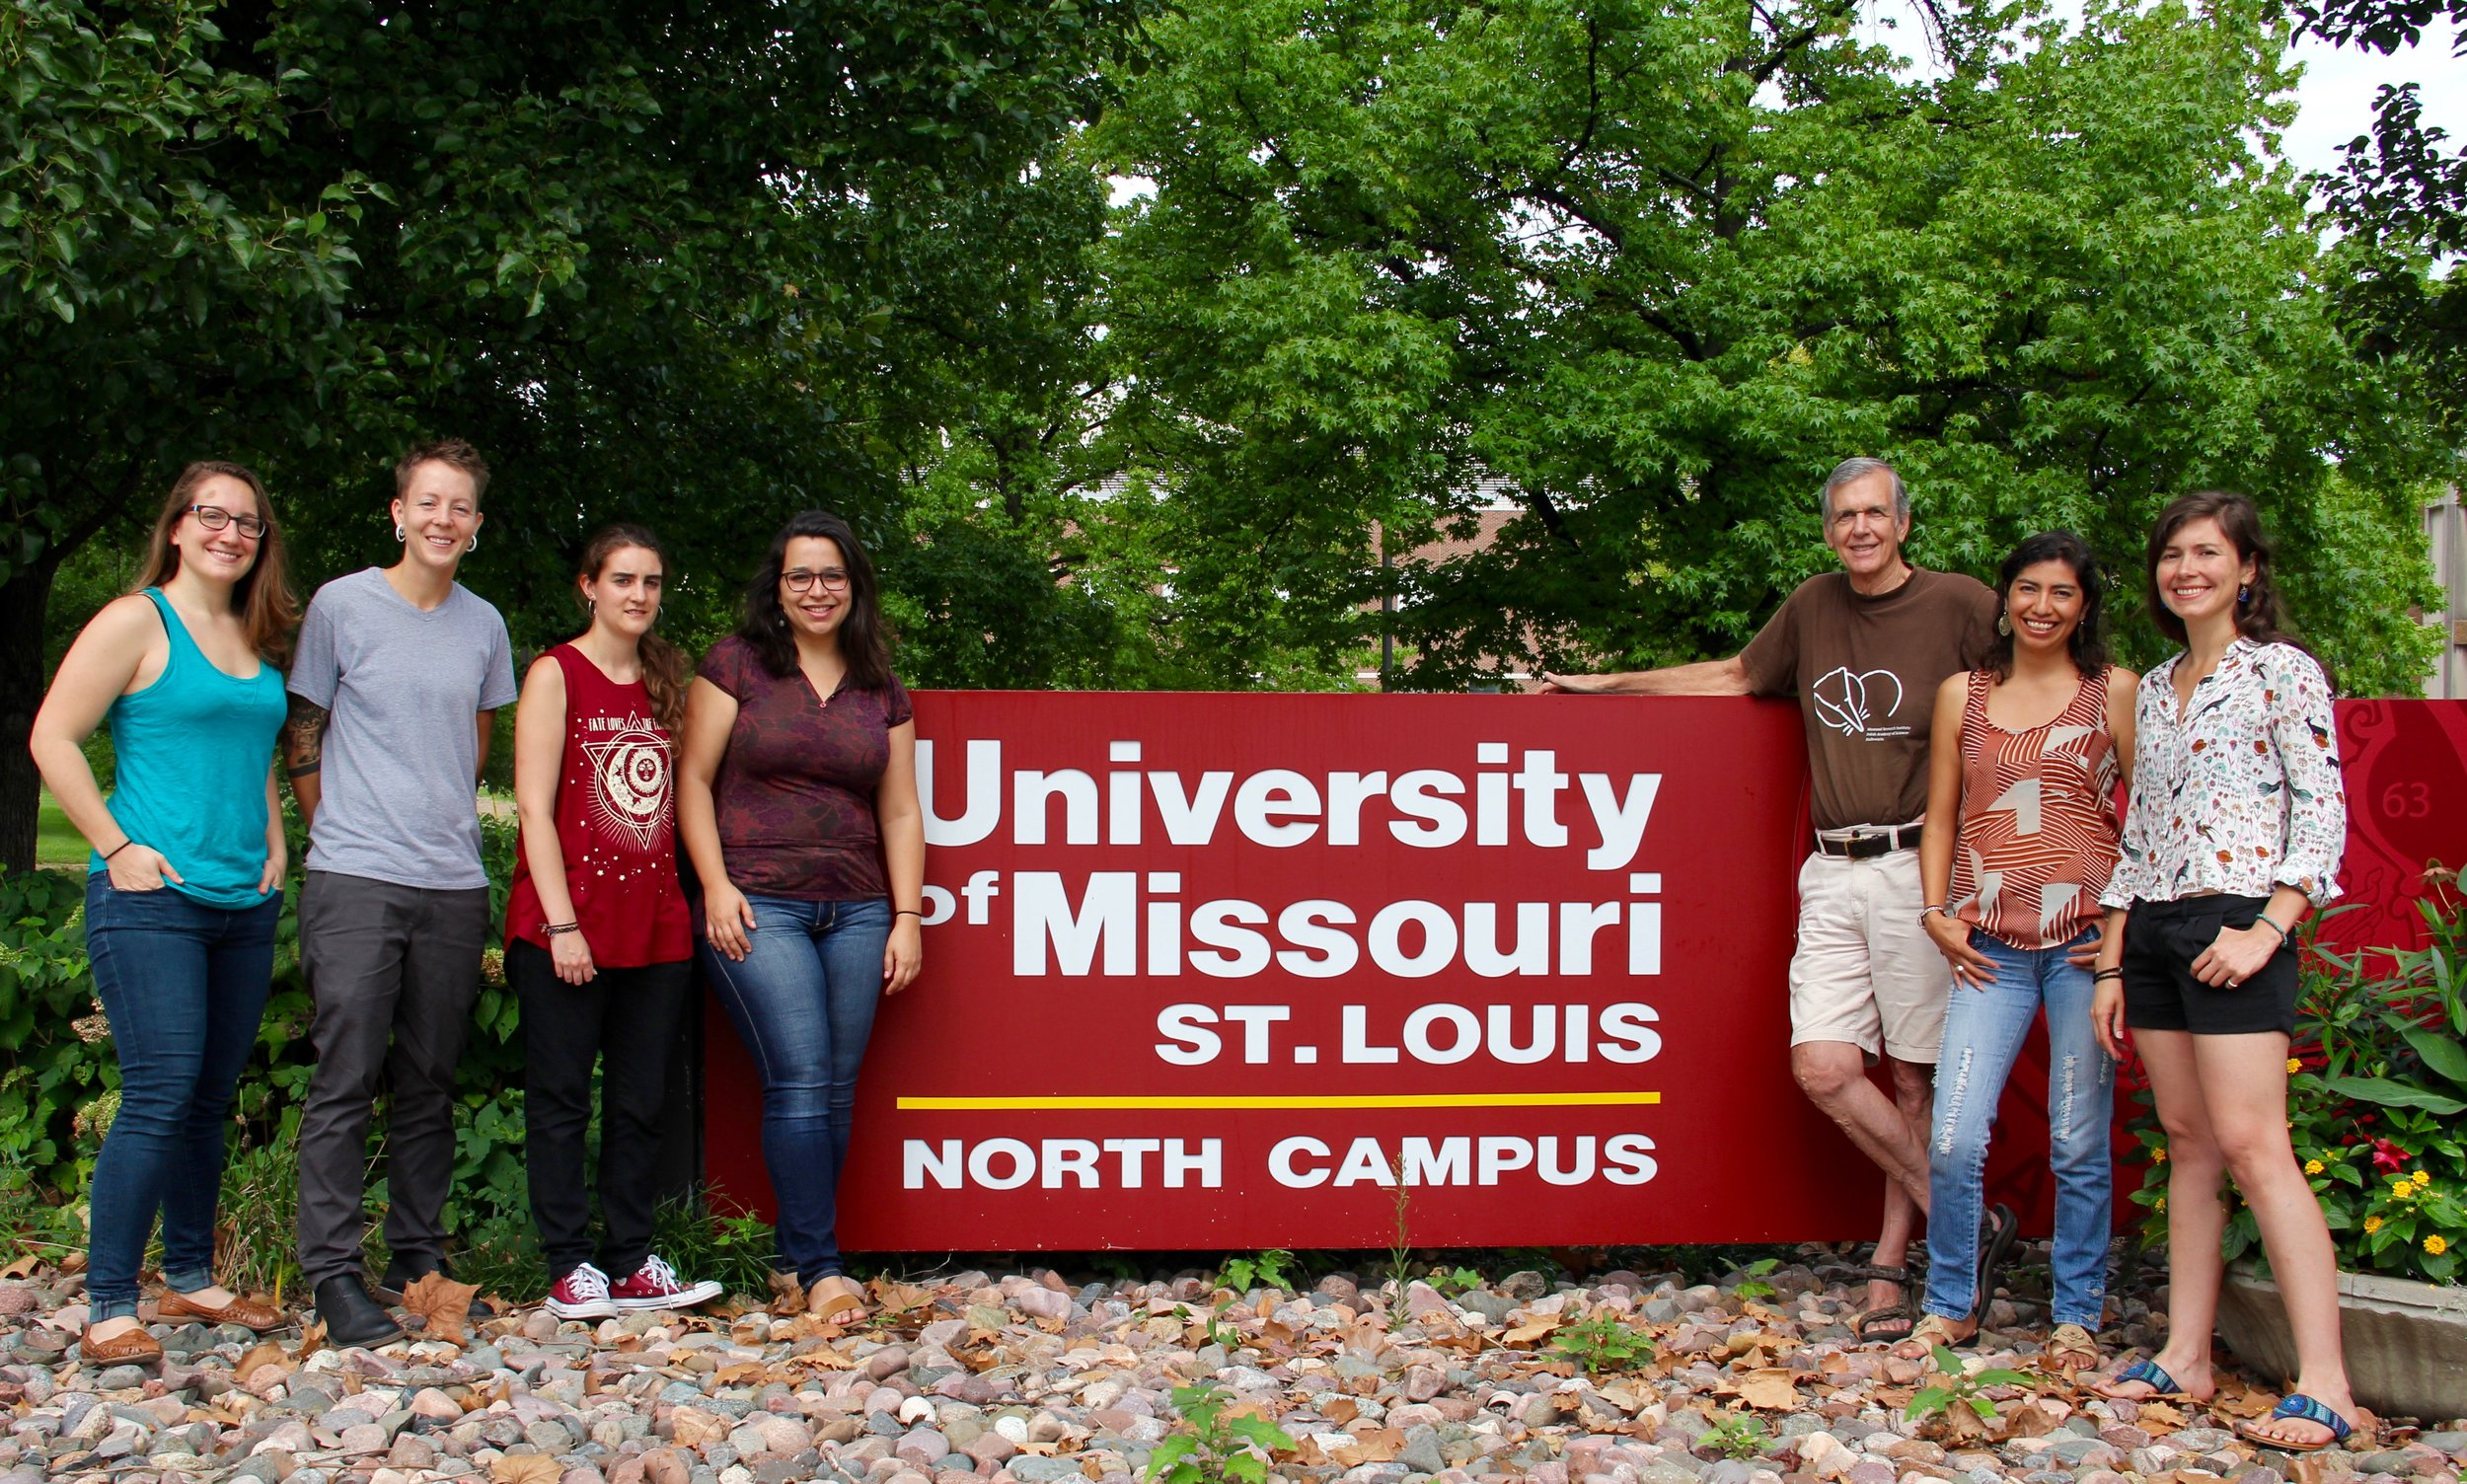 From left, Emma, Meg, Claudia, Leticia (alumna), Bob, Isa, and Leti (alumna)